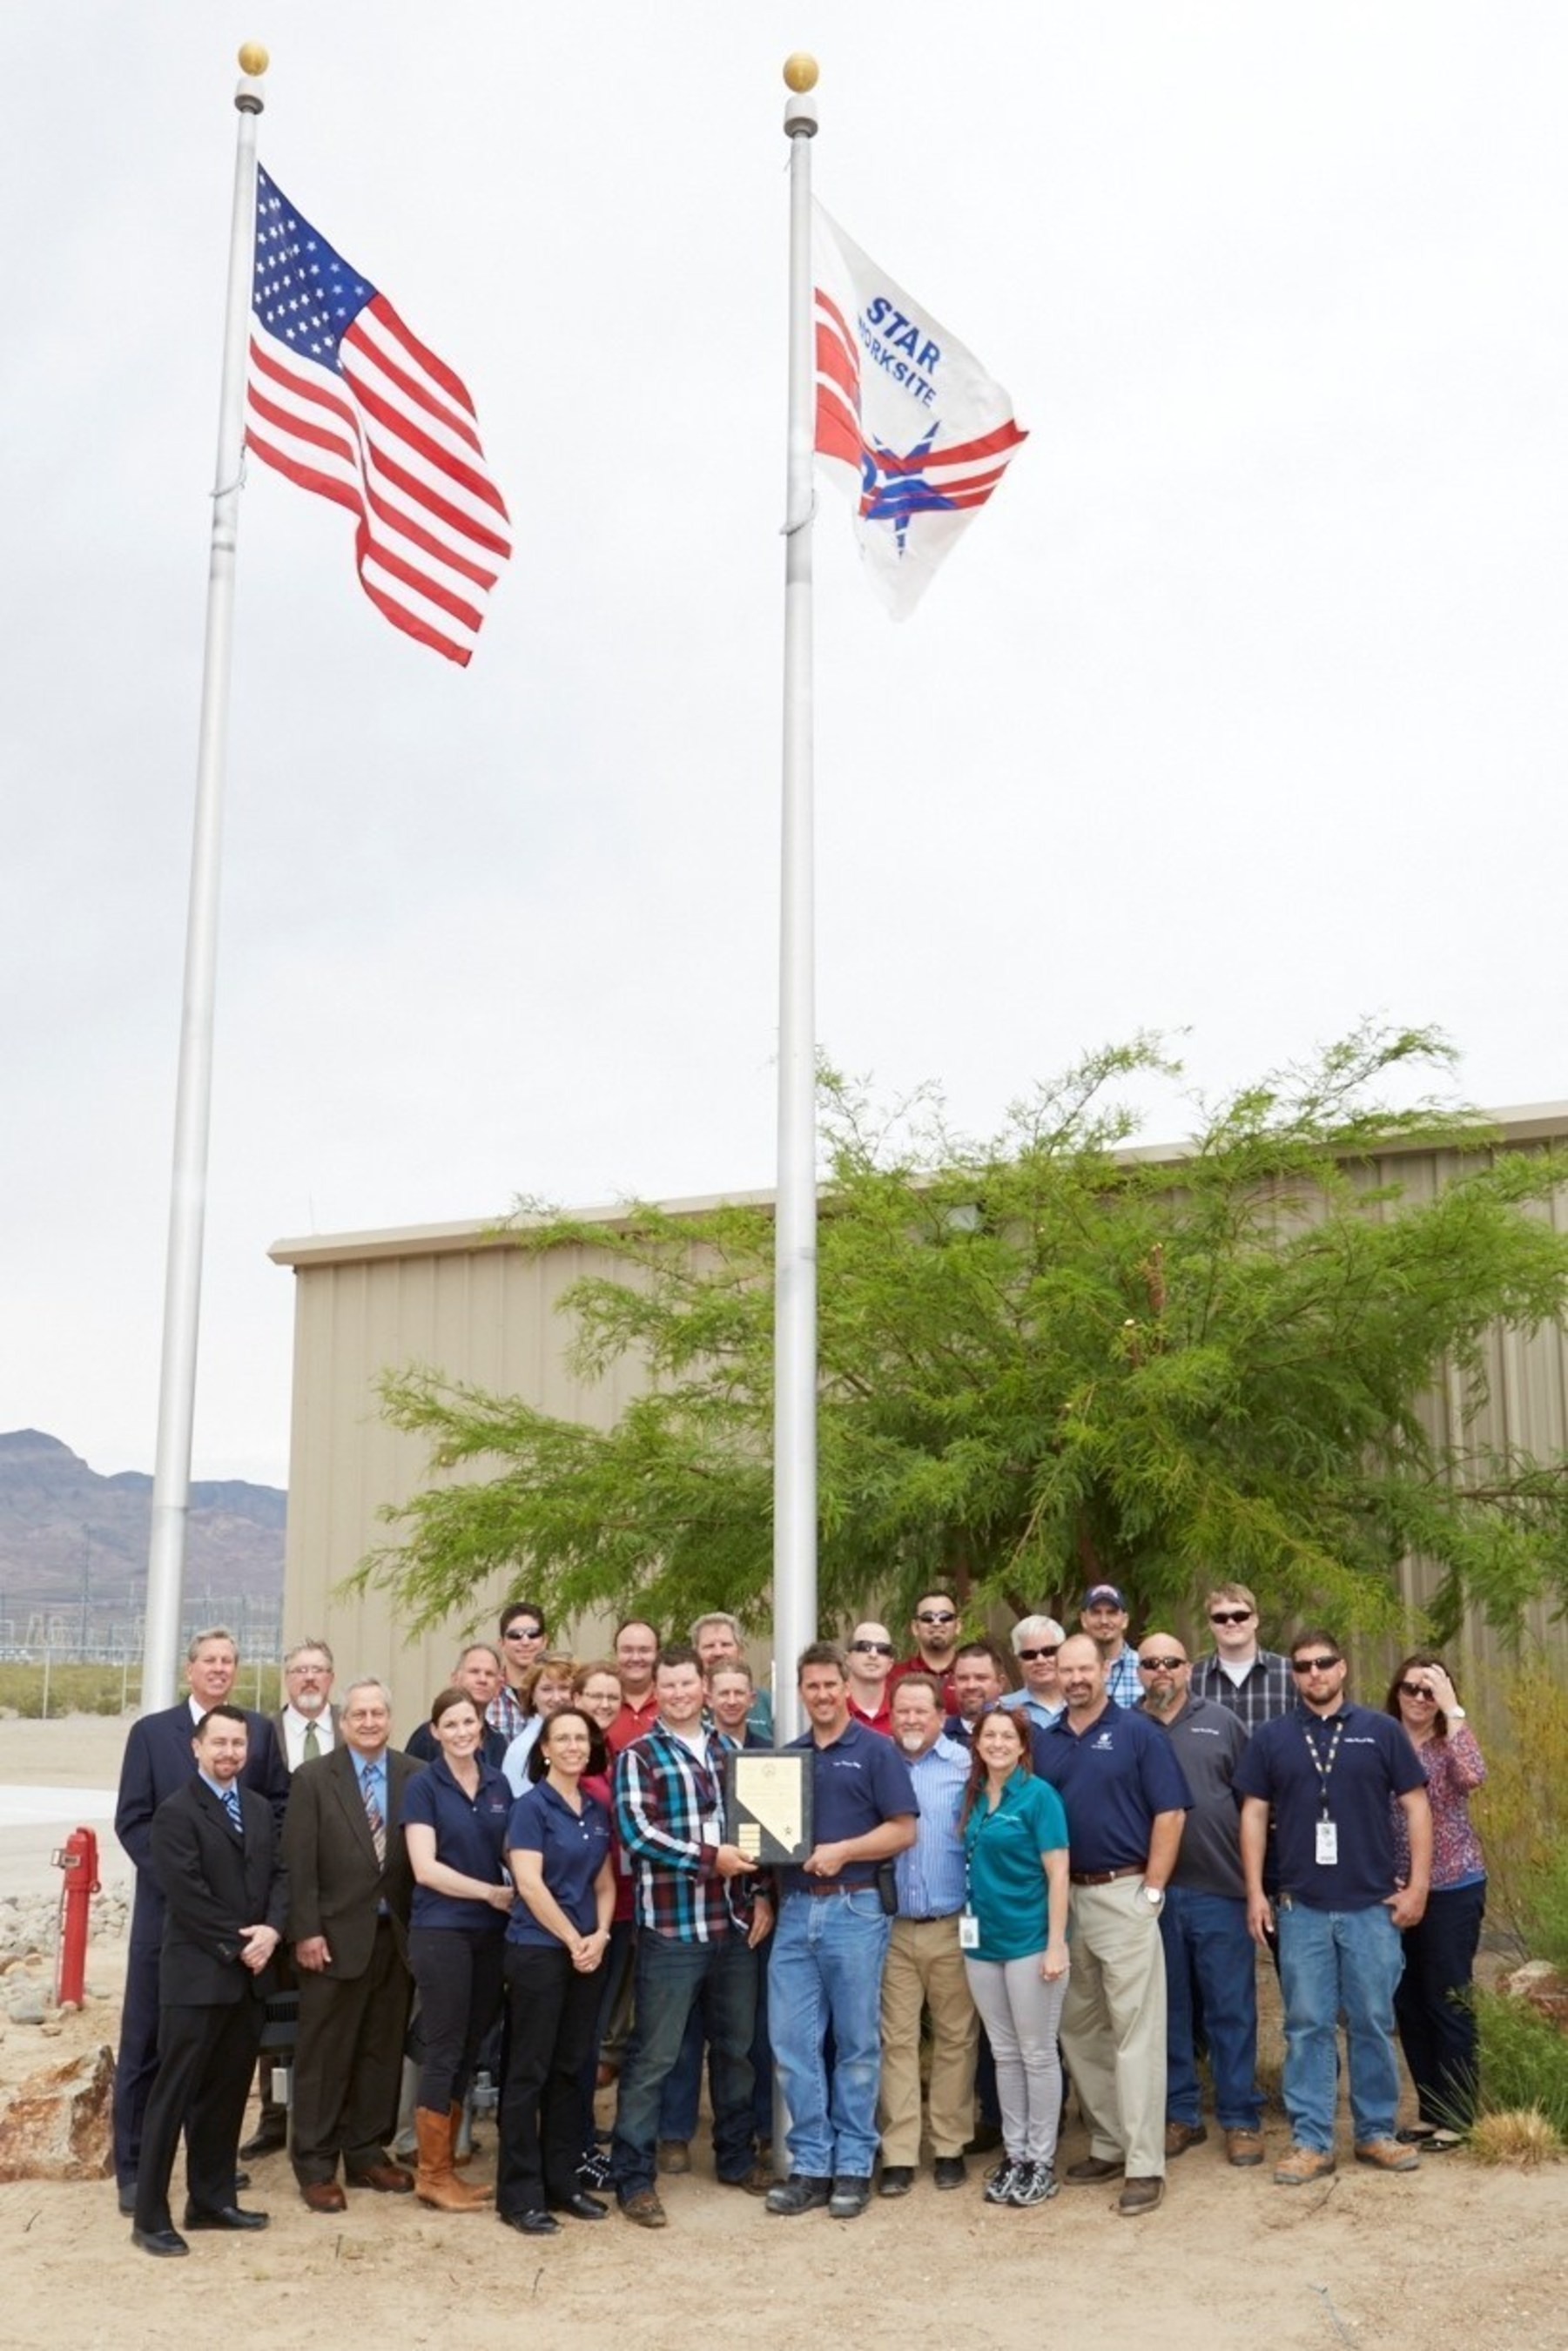 Representatives from the State of Nevada Occupational Safety and Health Administration (Nevada OSHA) presented Sempra U.S. Gas & Power's Copper Mountain Solar 1 facility with a Voluntary Protection Programs Star flag and a plaque at a ceremony held at the facility on May 20.